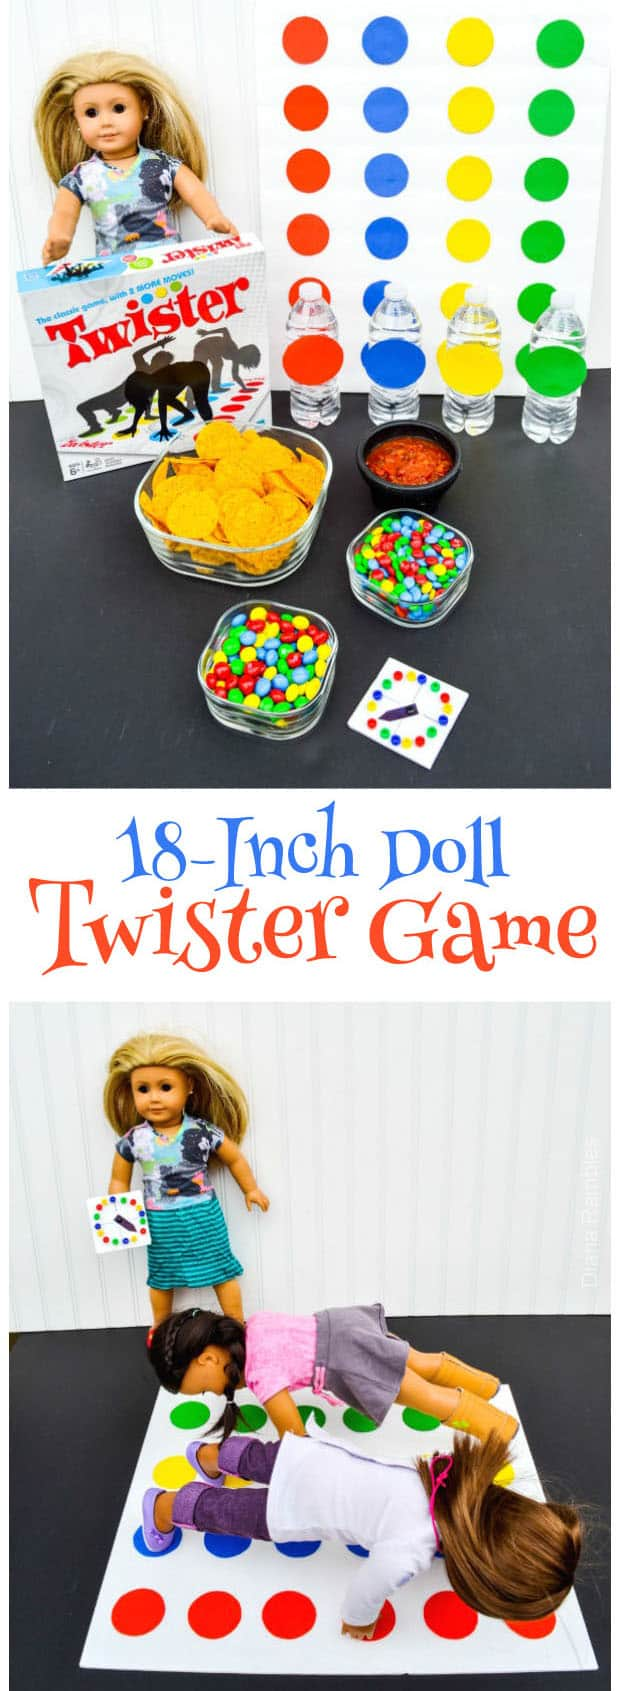 18-Inch Doll Twister Game Night